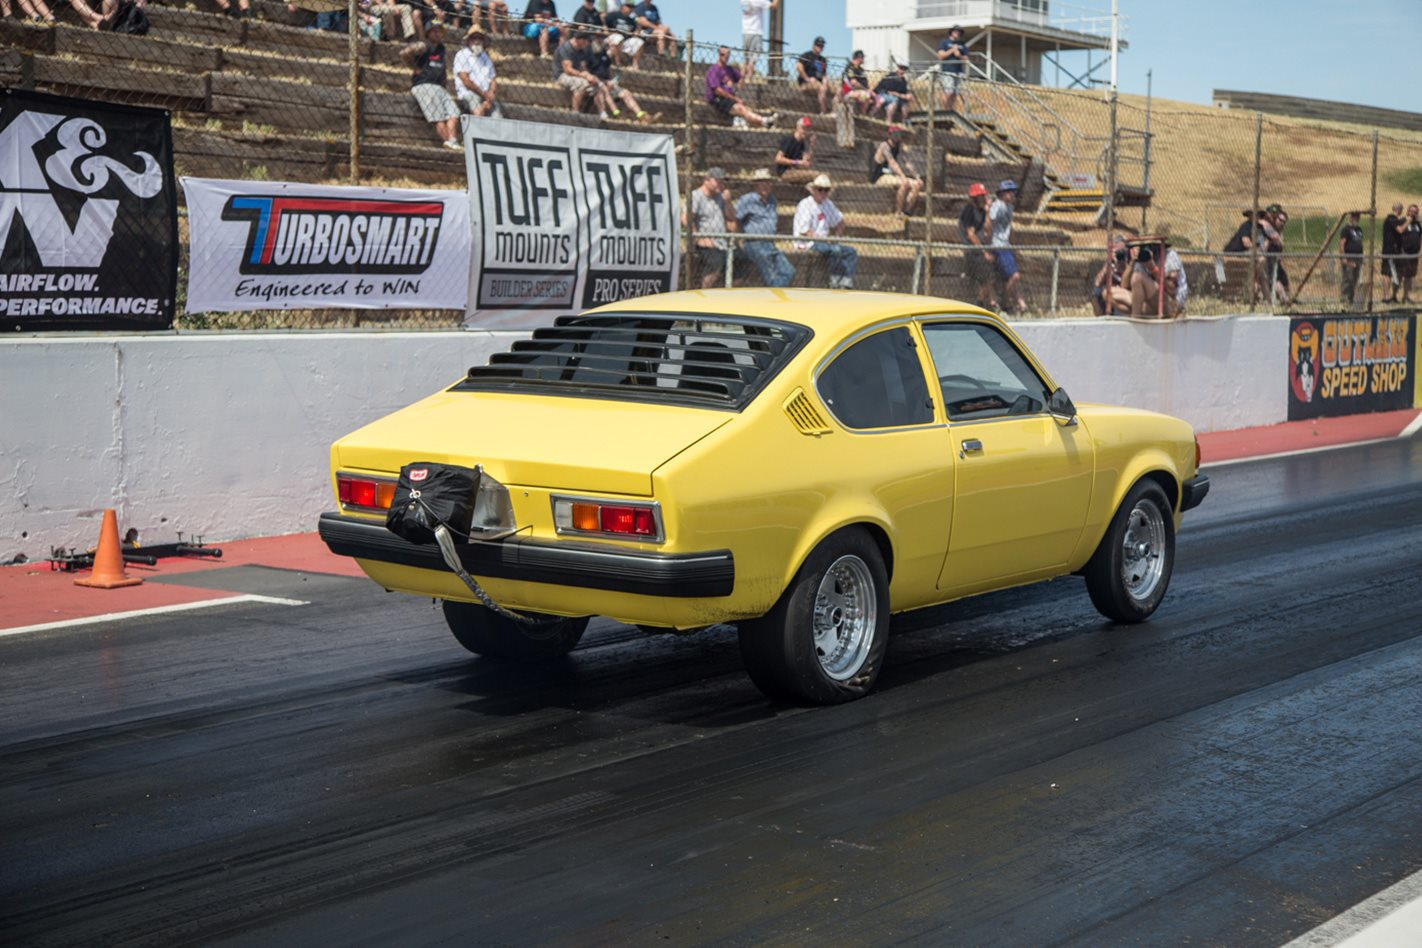 800HP TURBOCHARGED HOLDEN GEMINI AT DRAG CHALLENGE